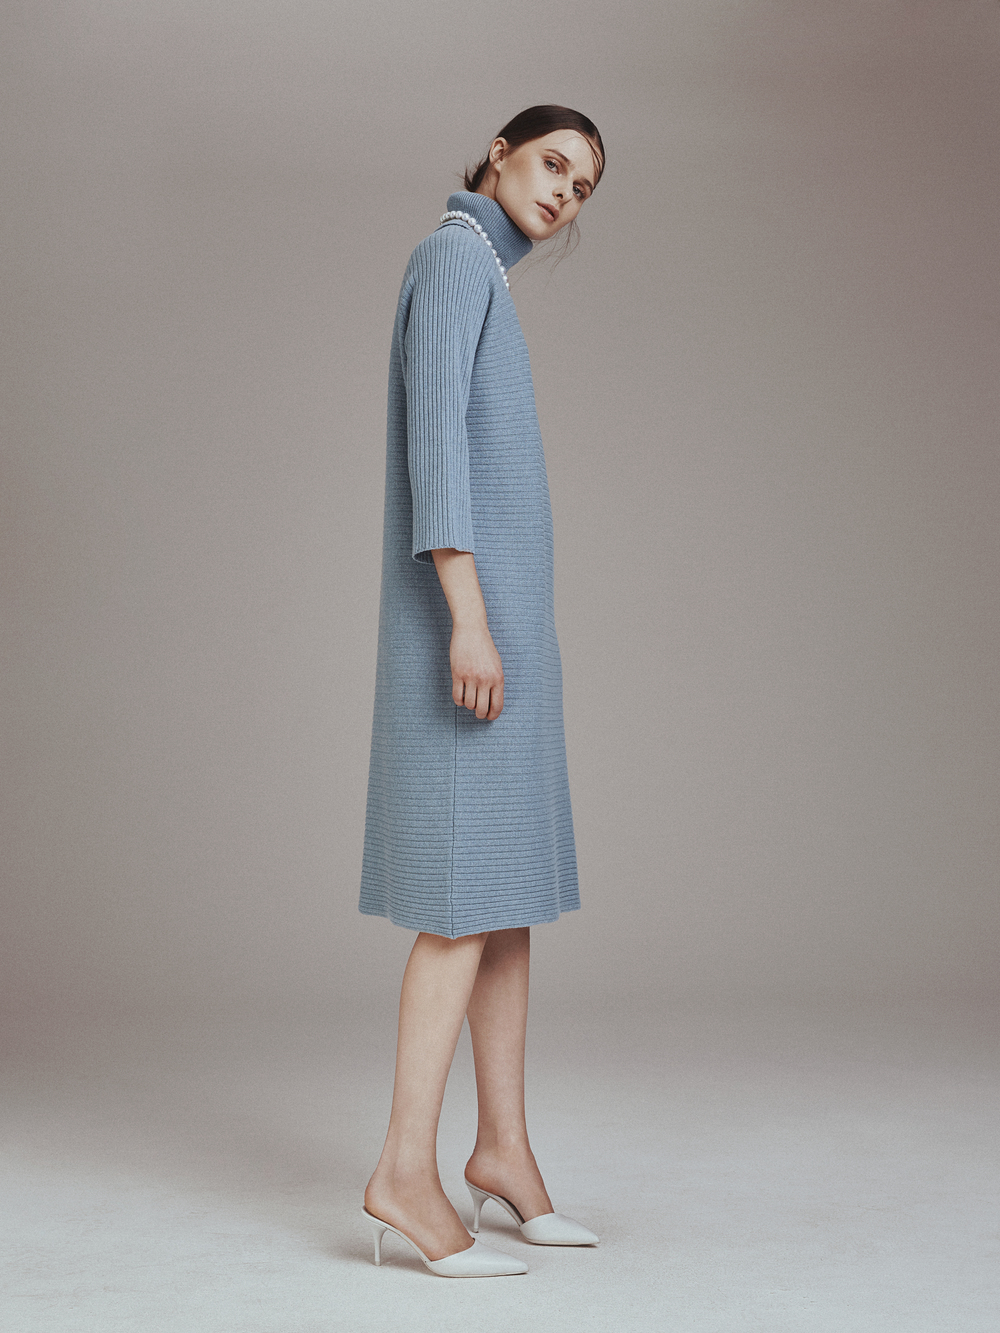 VIVIANA DRESS  Knit 100% Cashmere  -   ELIZABETH PEARLS  South Sea Pearls